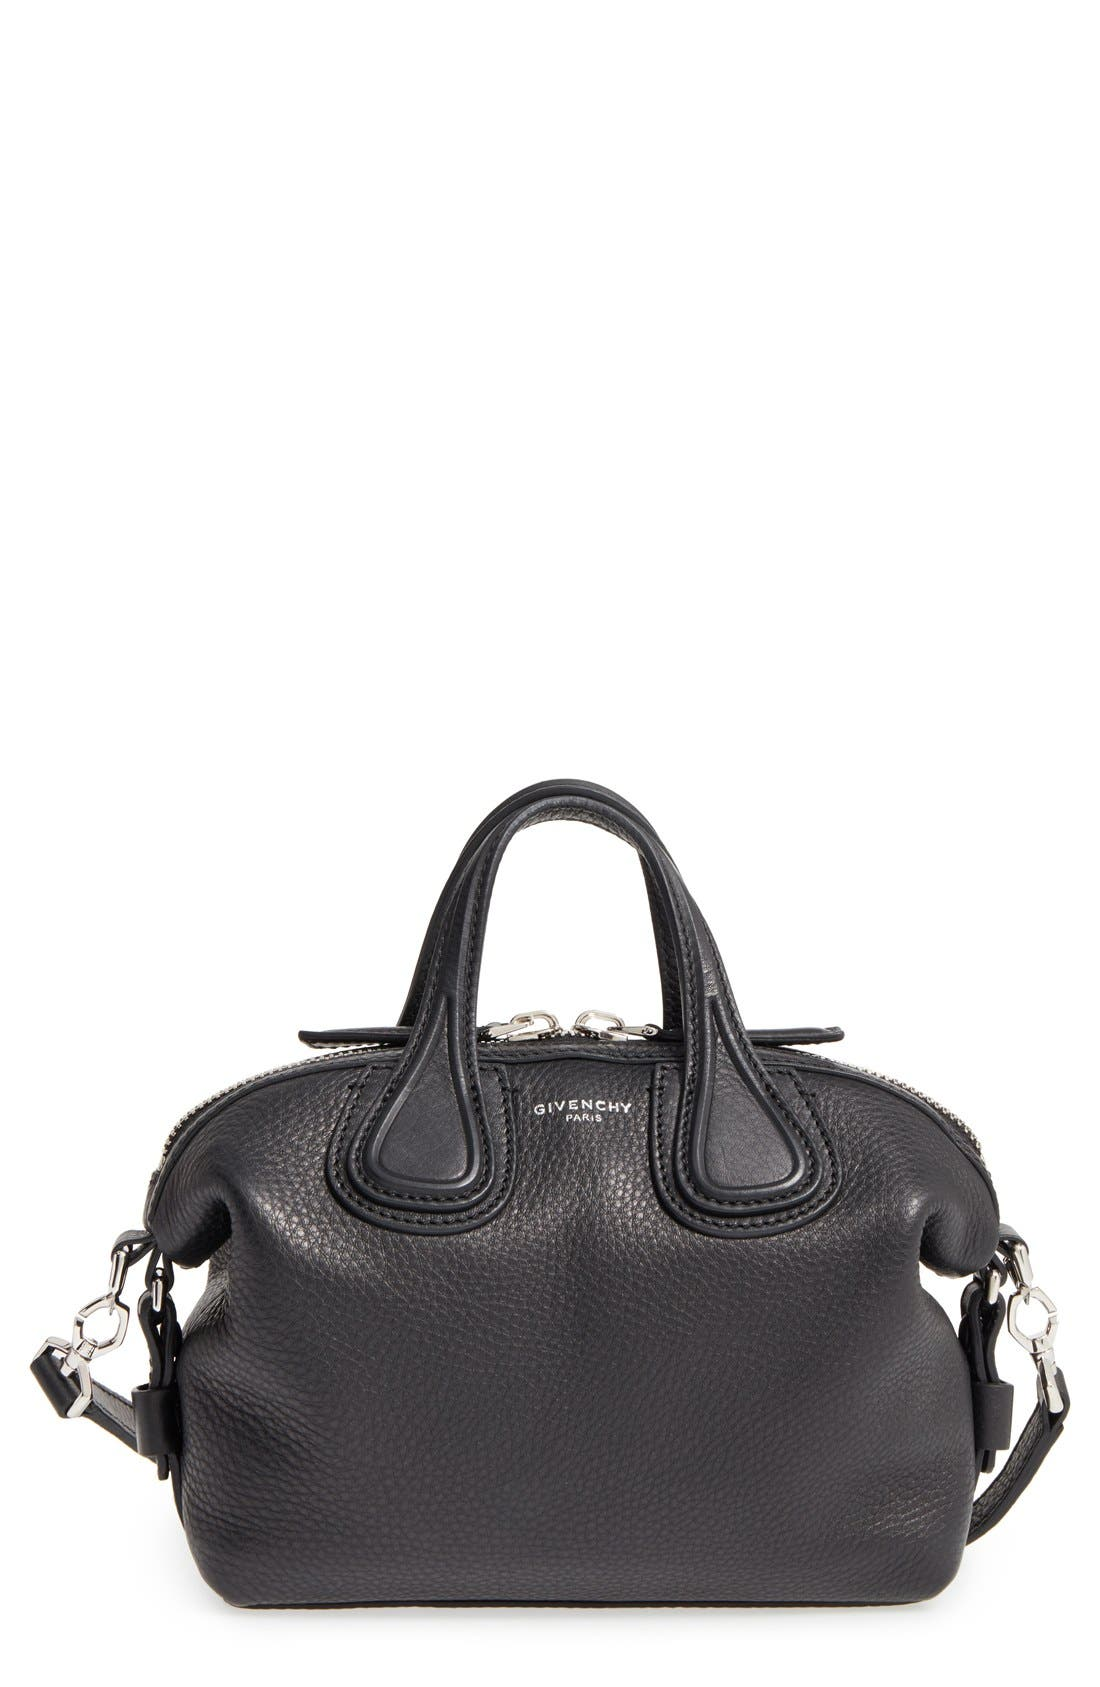 GIVENCHY Micro Nightingale Leather Satchel